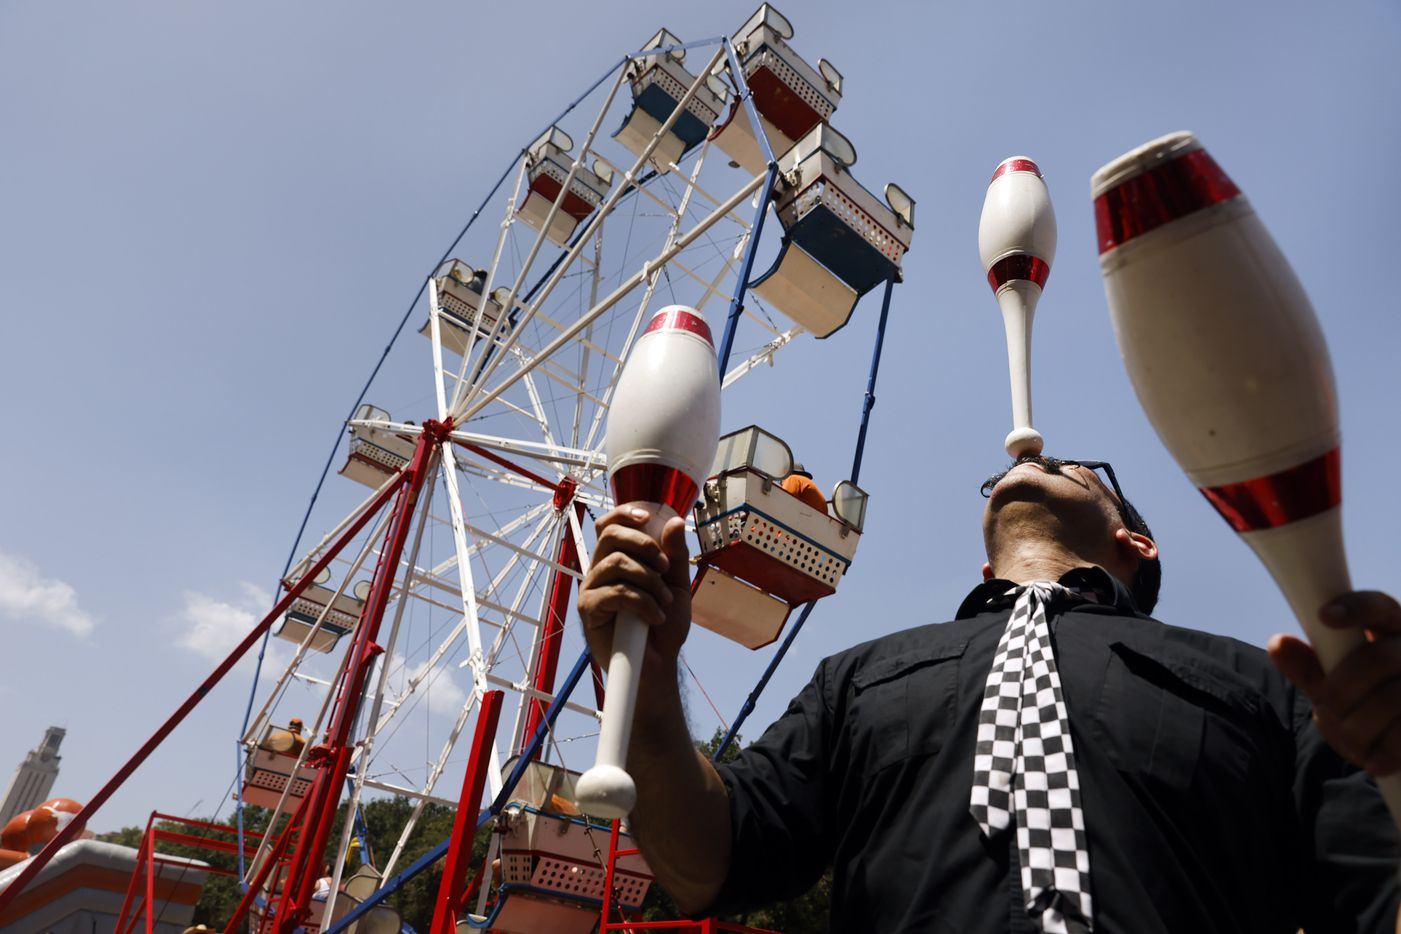 Circus performer Oscar Liendo juggles and glances bowling pins along Smokey's Midway outside of DKR-Texas Memorial Stadium in Austin, Saturday, September 4, 2021. The Longhorns were facing the Louisiana-Lafayette Ragin Cajuns. (Tom Fox/The Dallas Morning News)